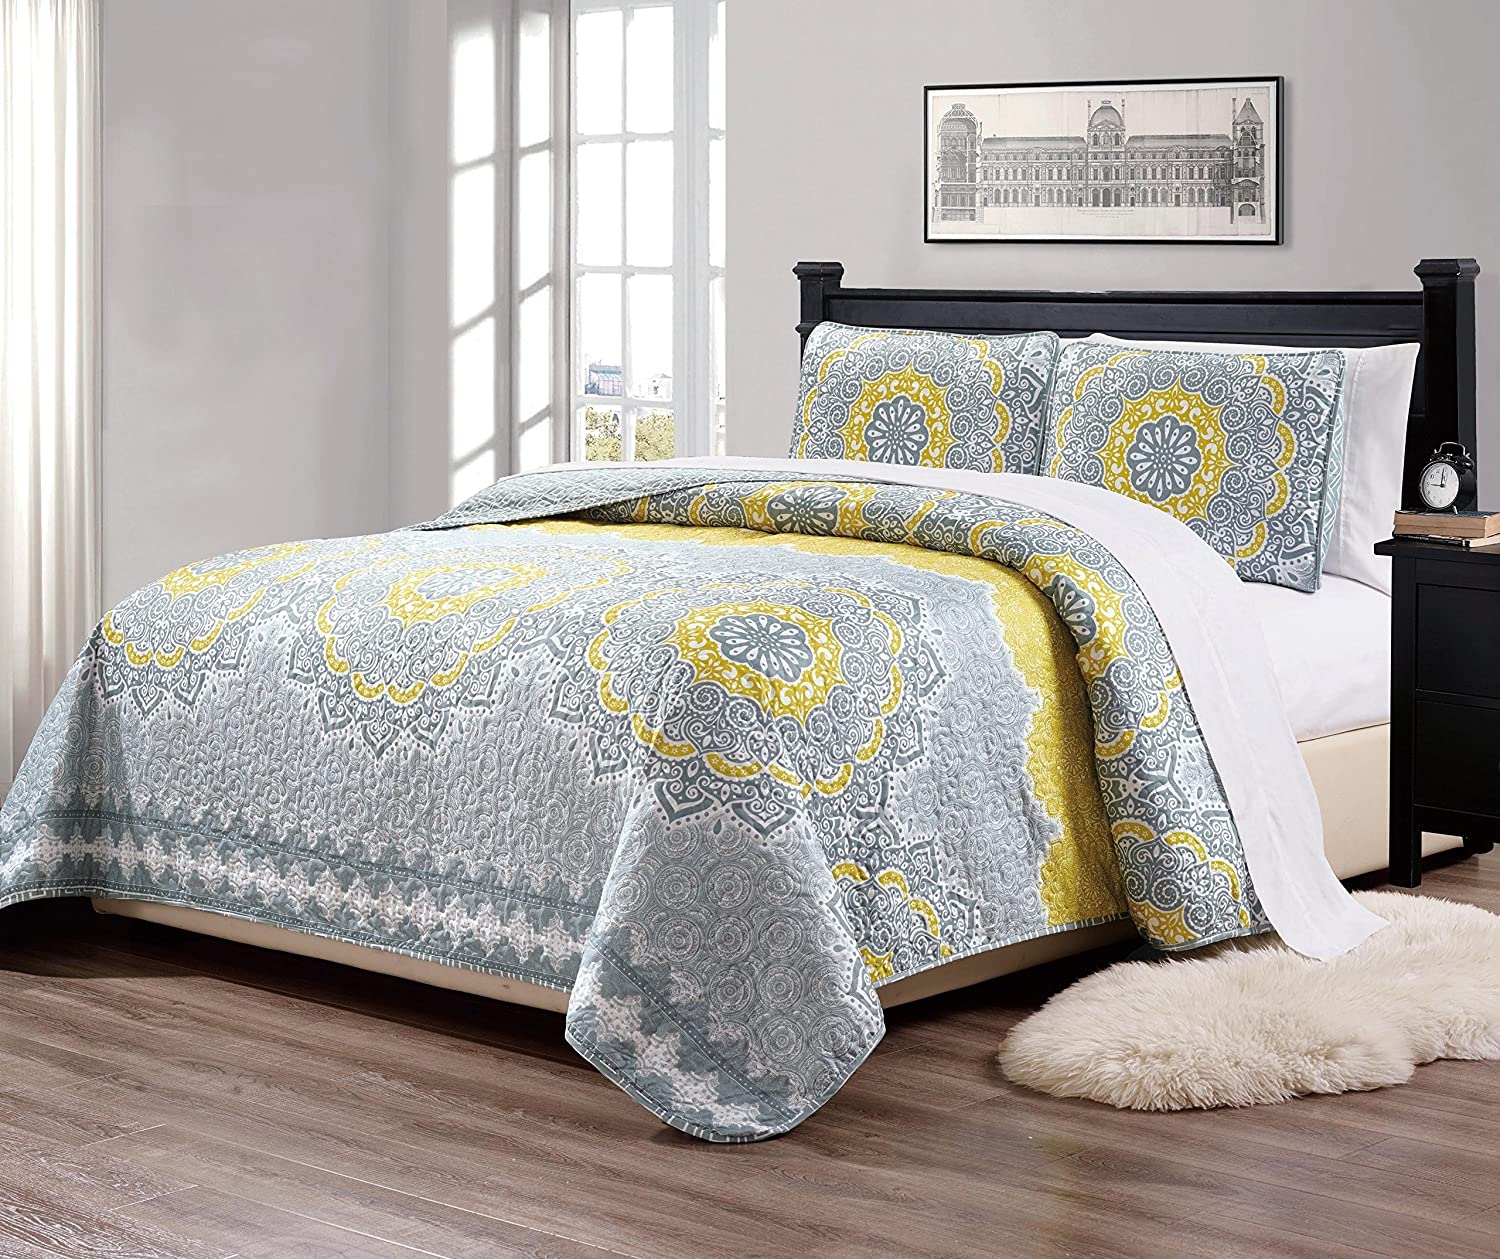 "Mk Collection 3pc King/California King Bedspread Quilt Over Size 118"" X 95"" Yellow Coastal Plain Grey Green White Elegant Design # Oslo Yellow"